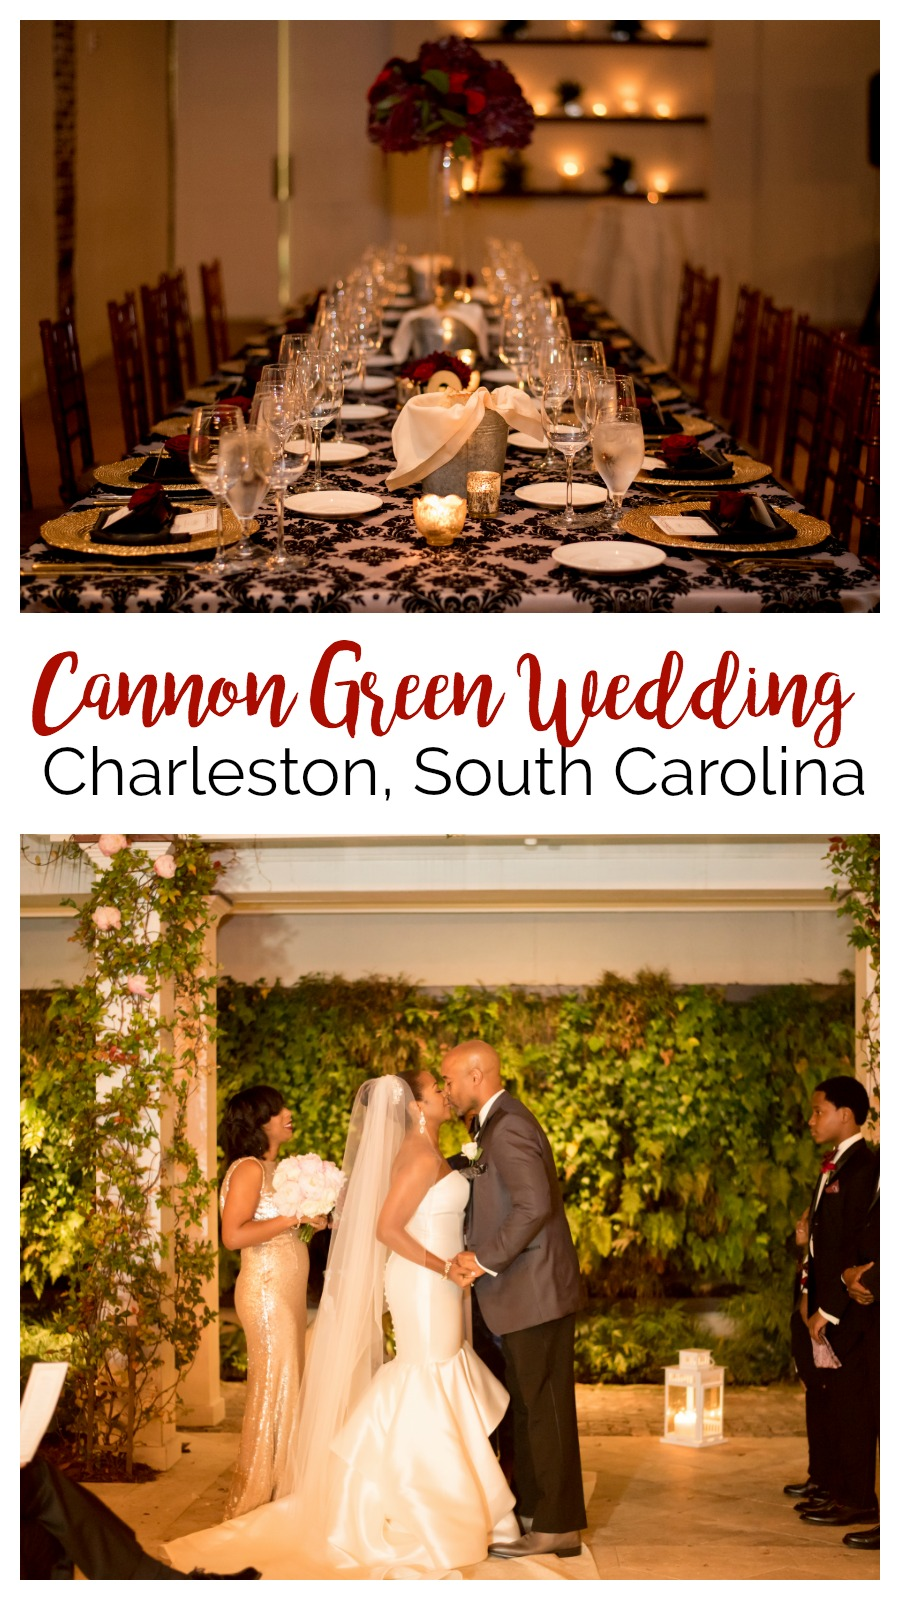 Adrienne + Kevin: Upbeat Cannon Green Wedding for a Devoted Couple | Palmetto State Weddings | Denise Benson Photography | Charleston, South Carolina, weddings